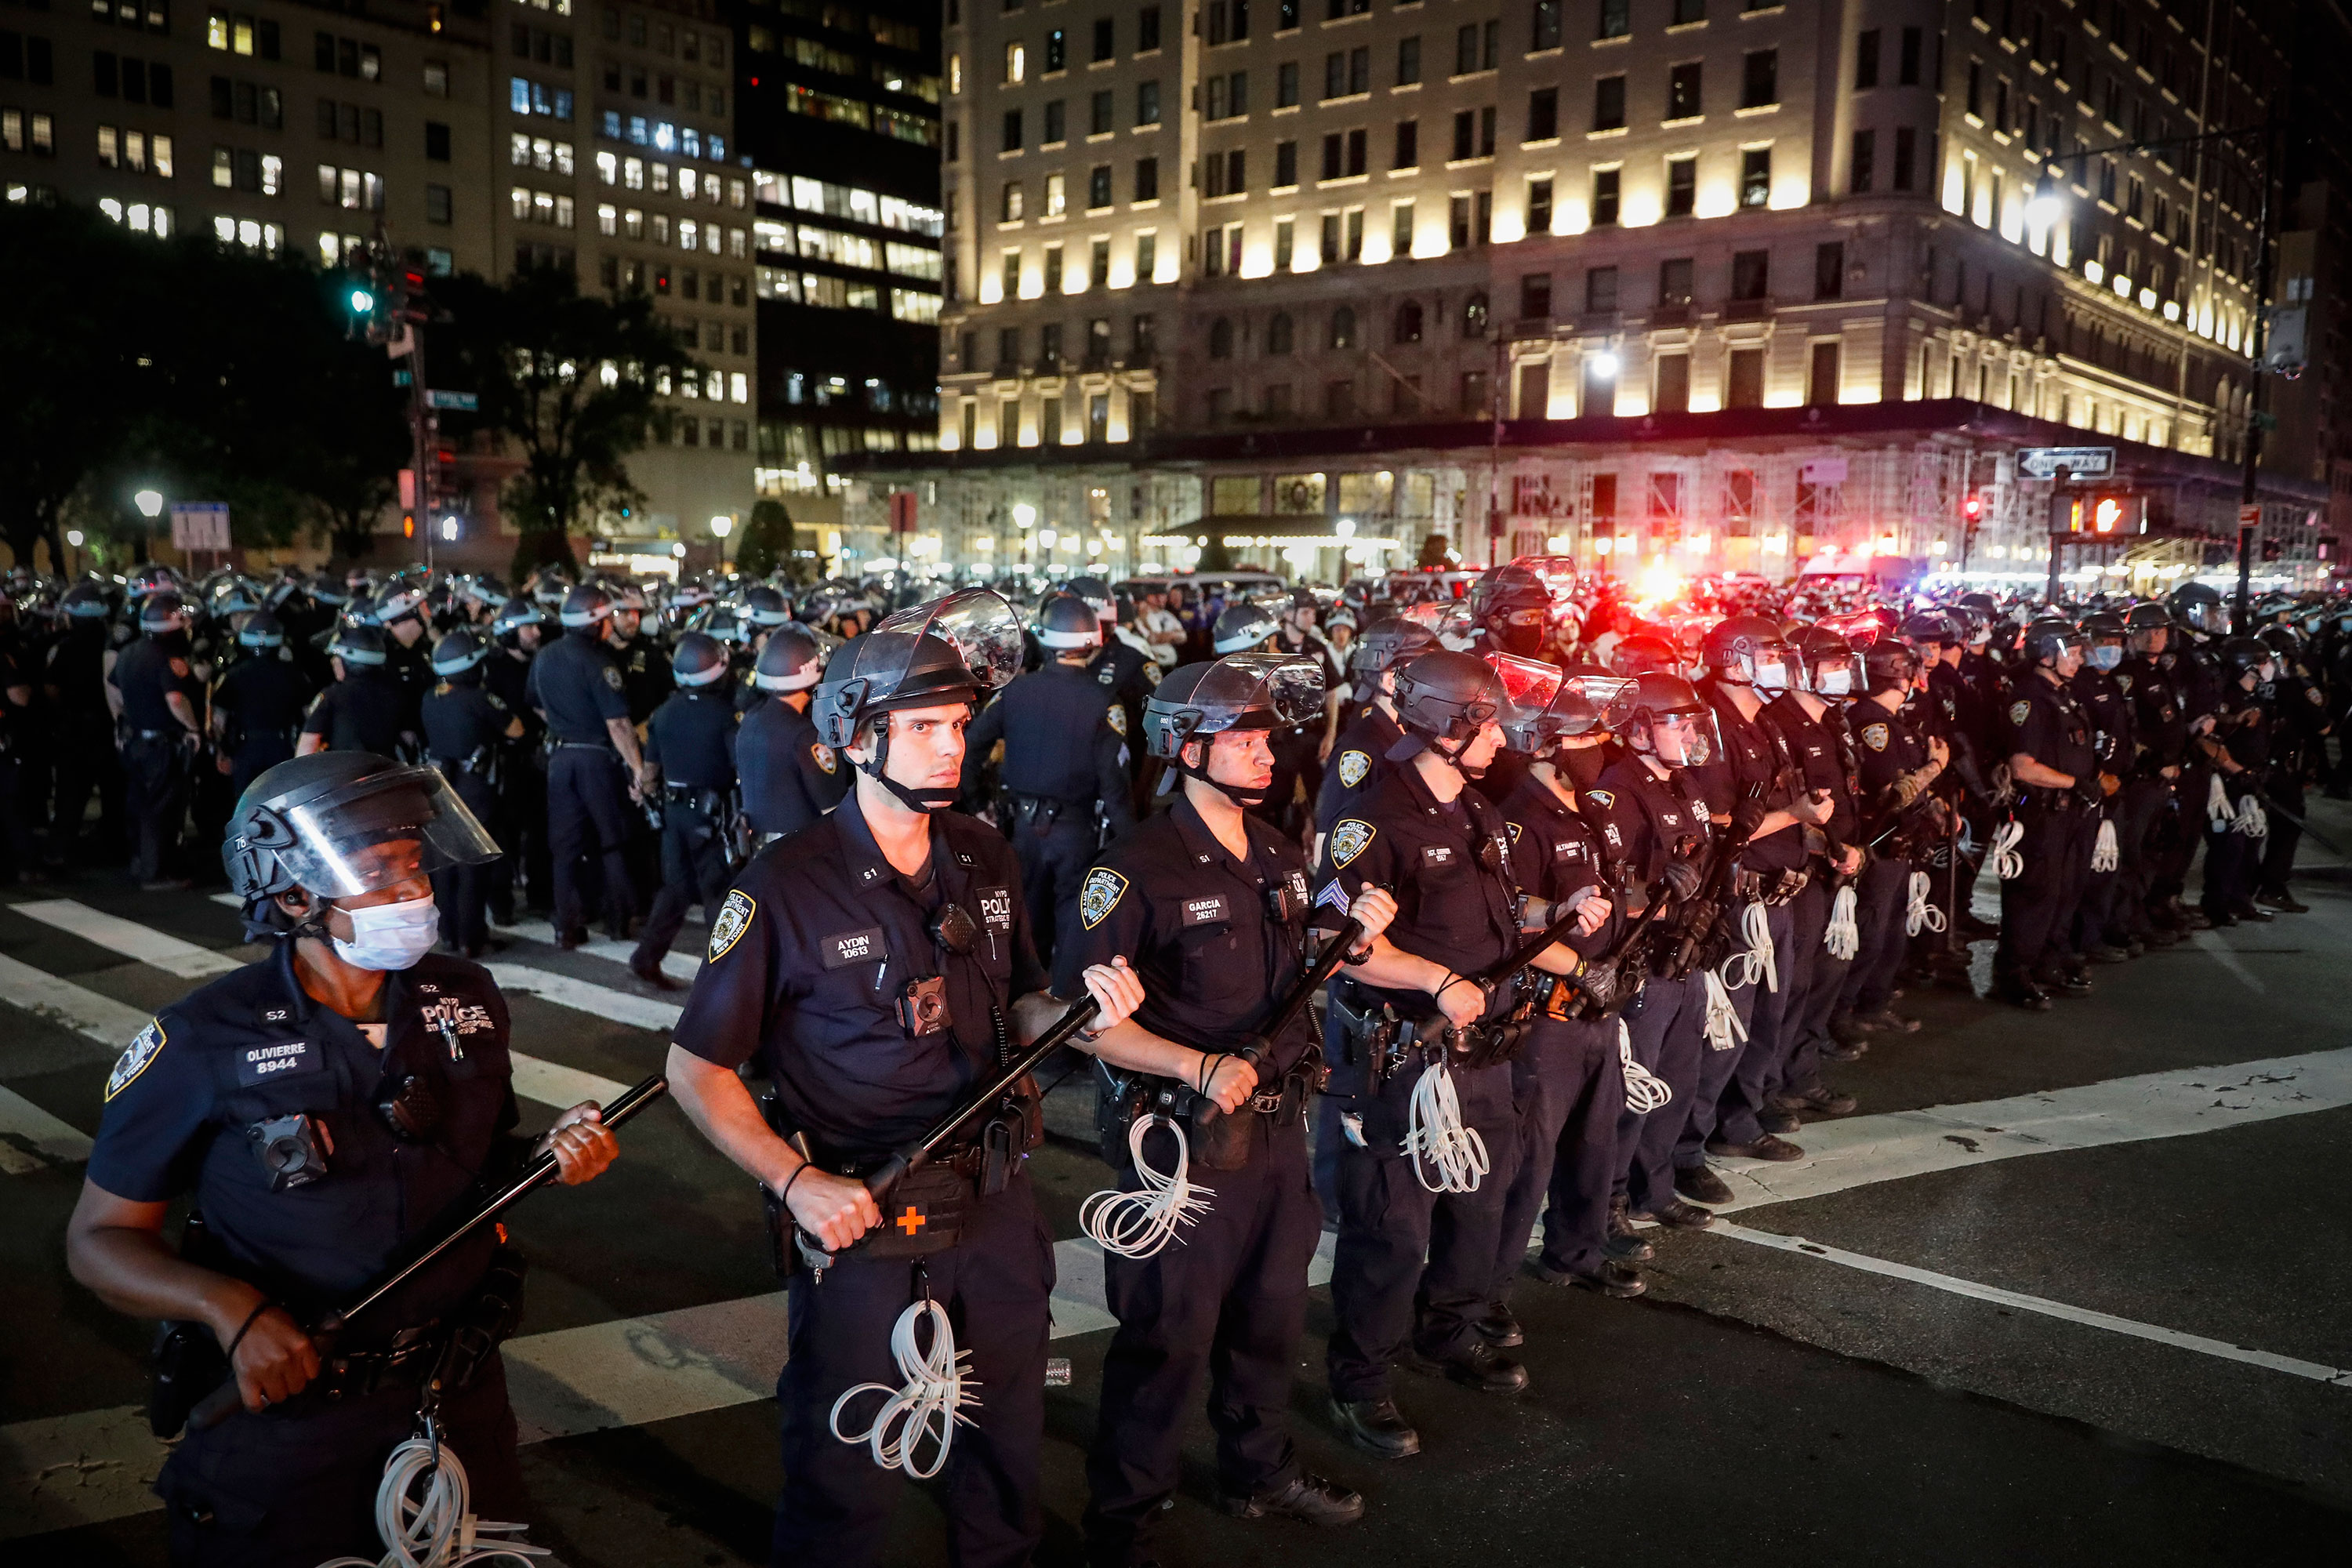 Police officers stand in formation after curfew on Thursday night in New York.